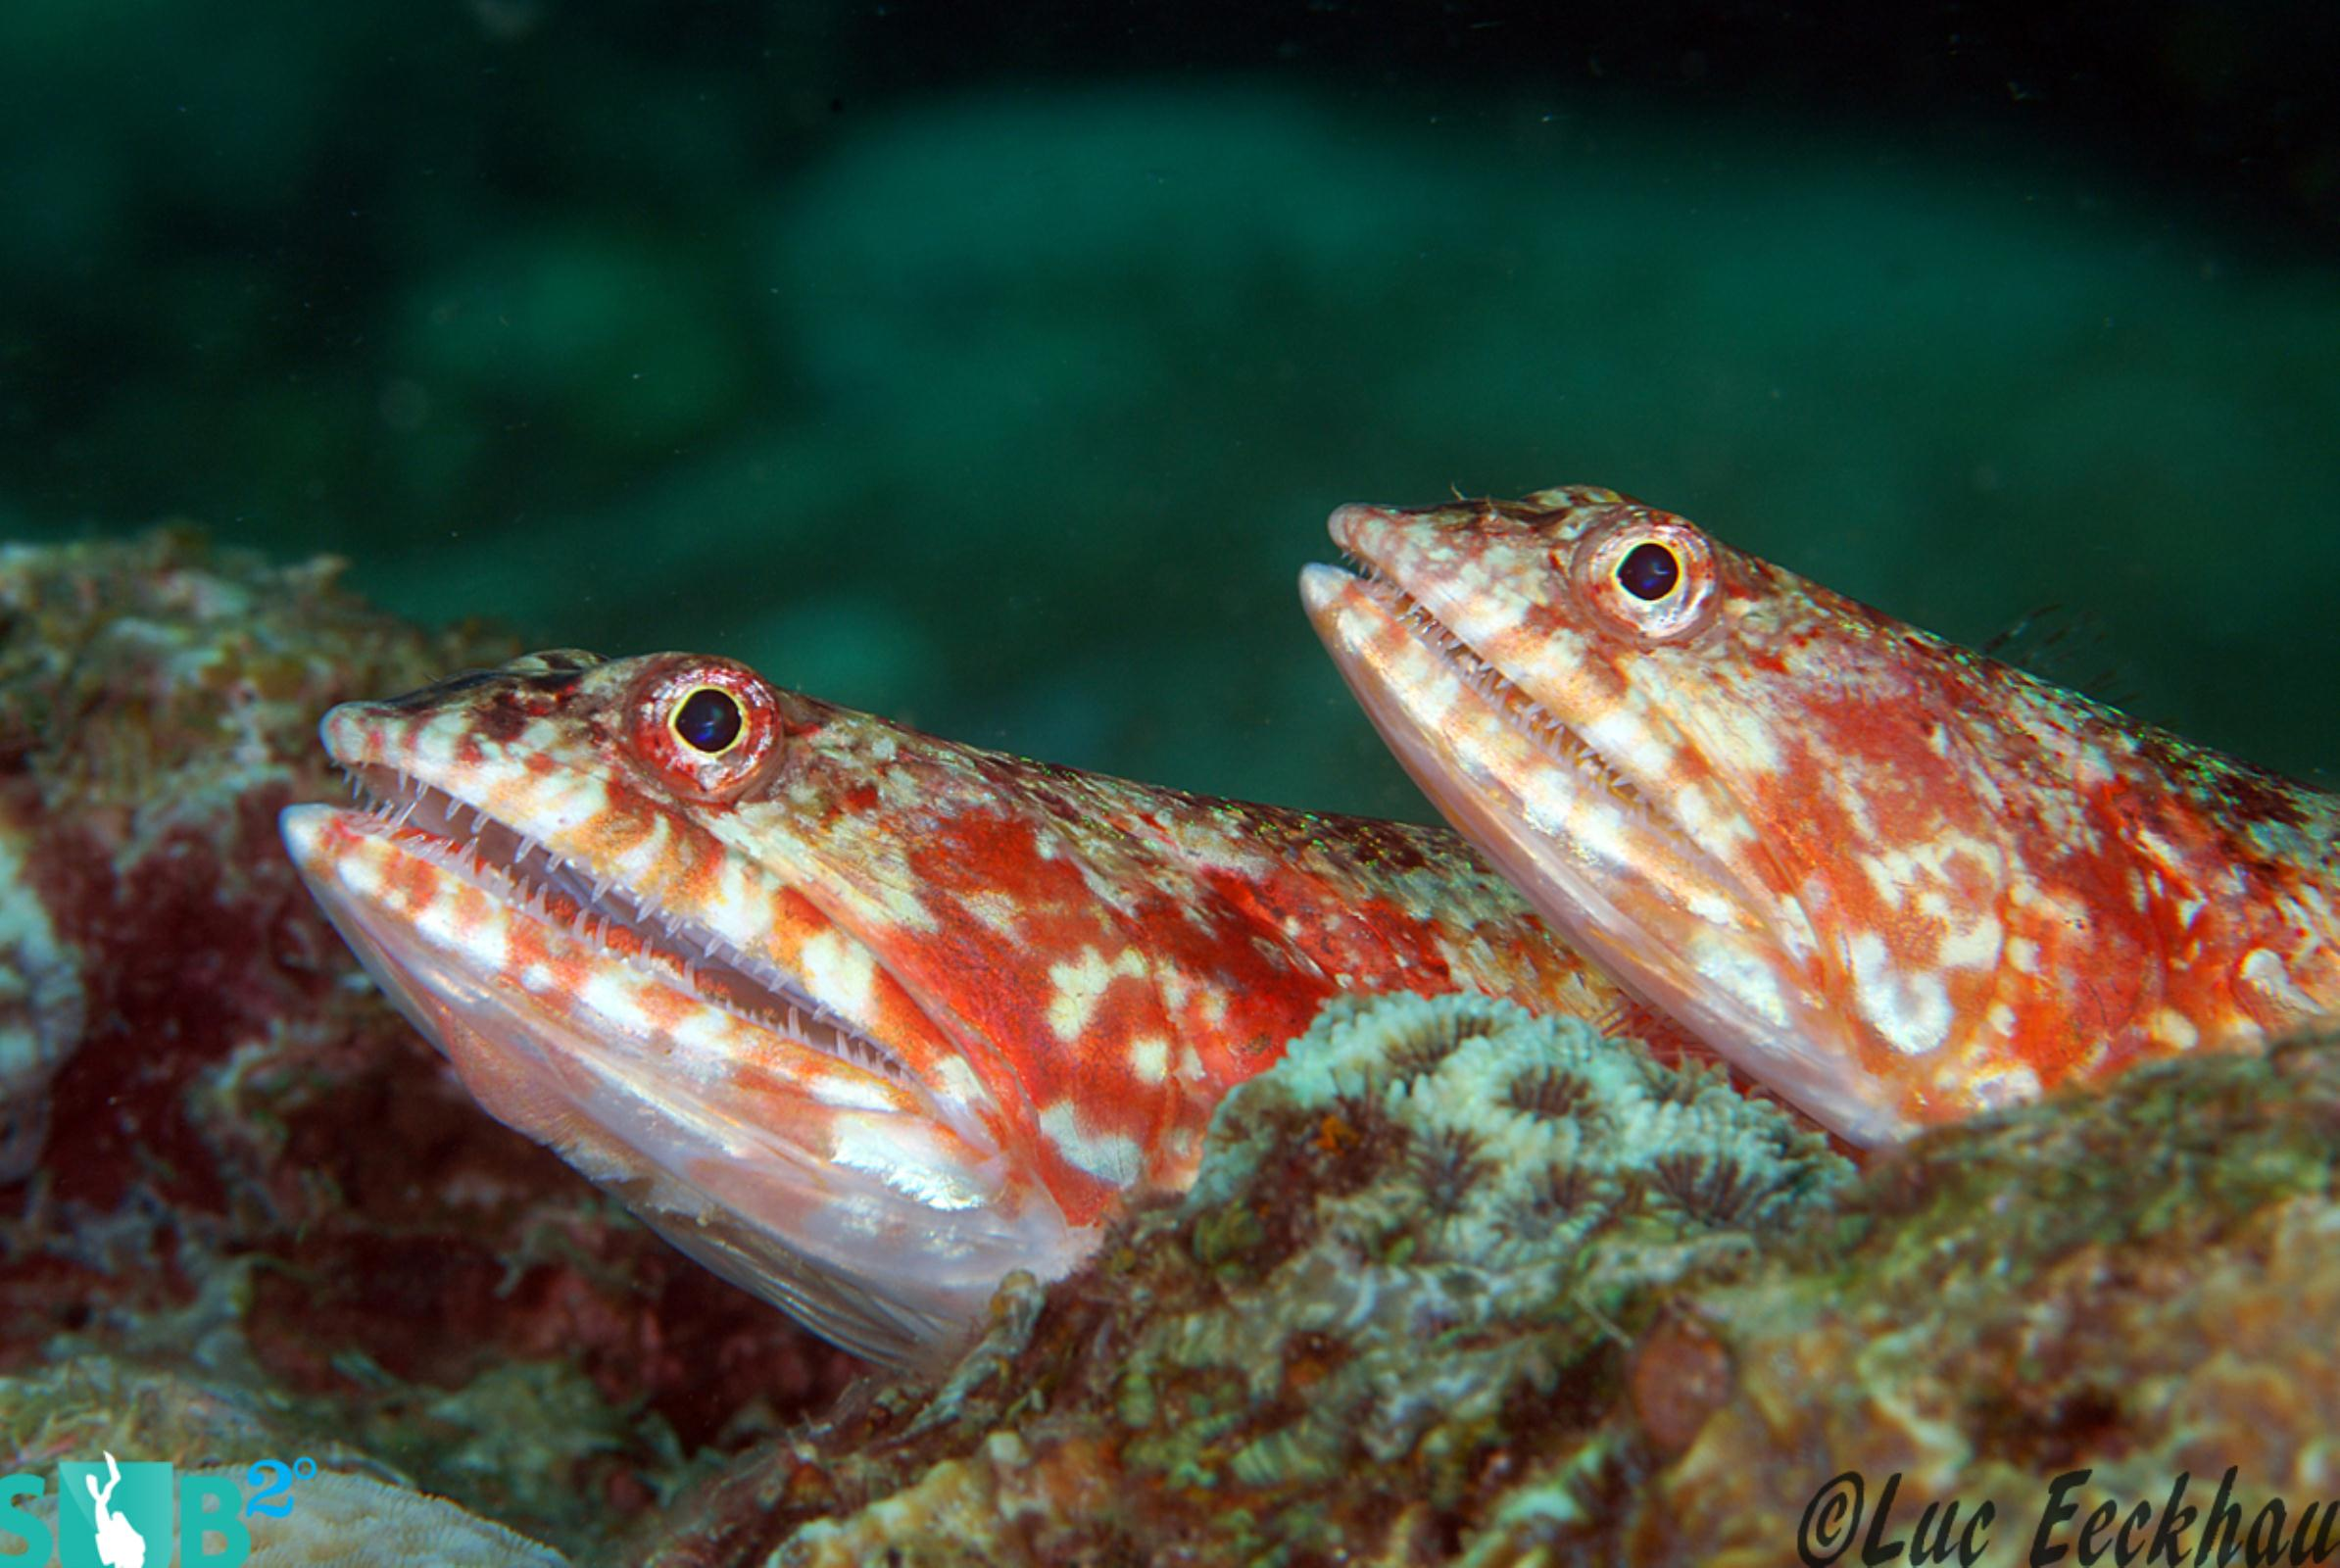 Two beautiful lizardfish resting together, just waiting for something to swim by.